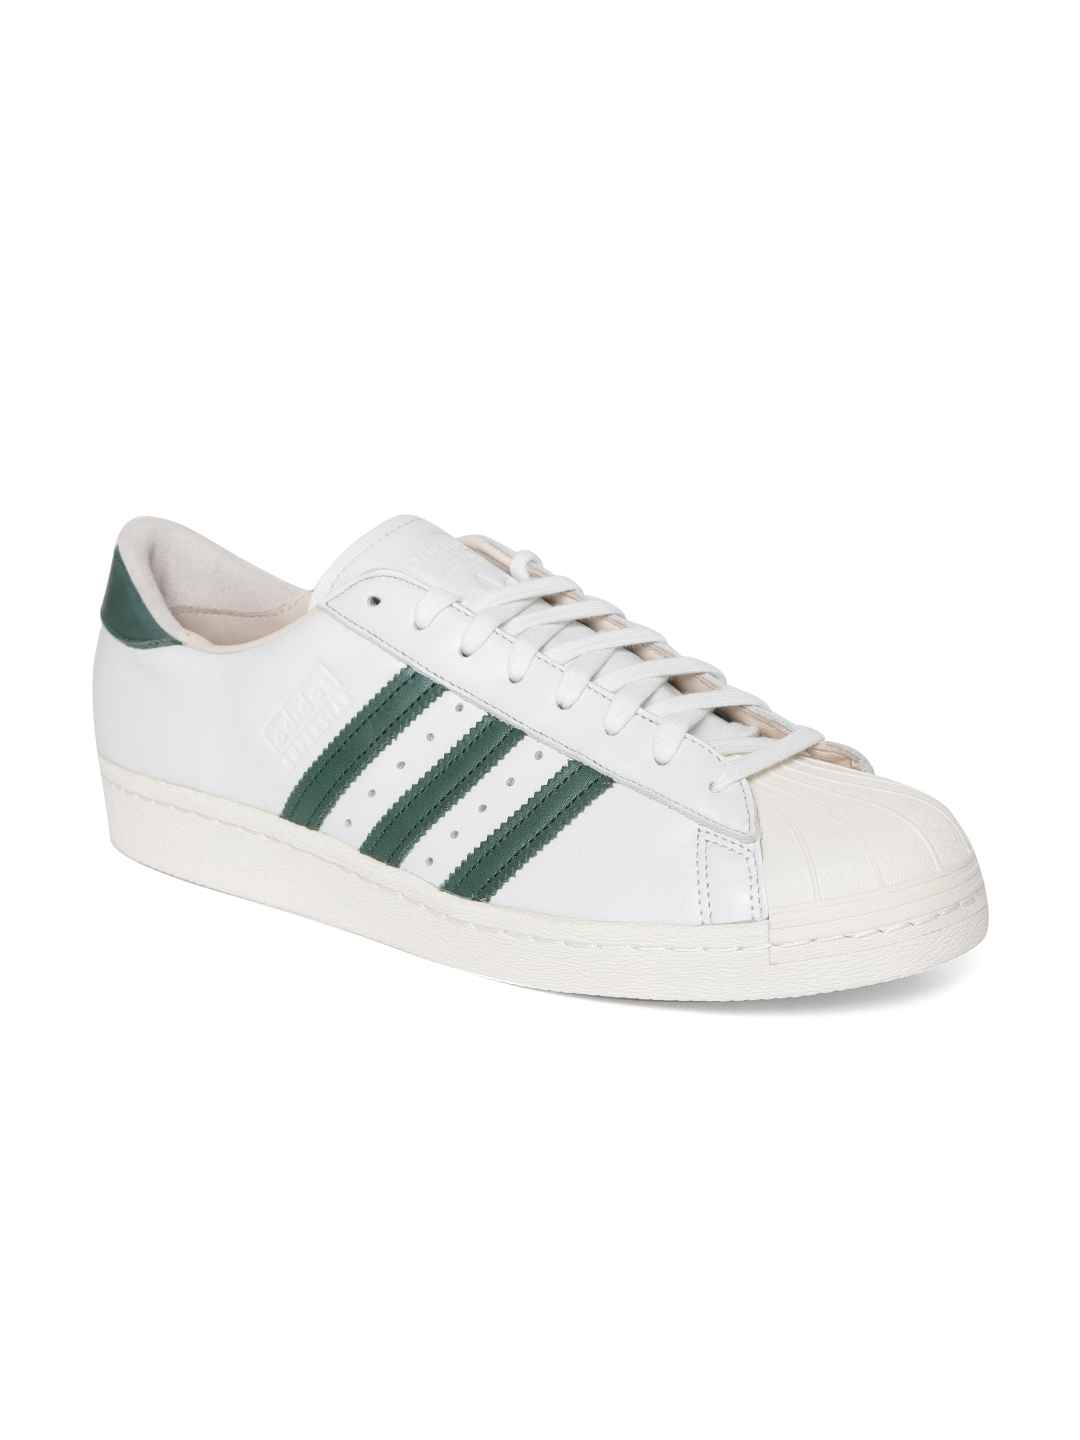 Originals Recon White Adidas Superstar Leather Men Sneakers 80s b7gYfy6